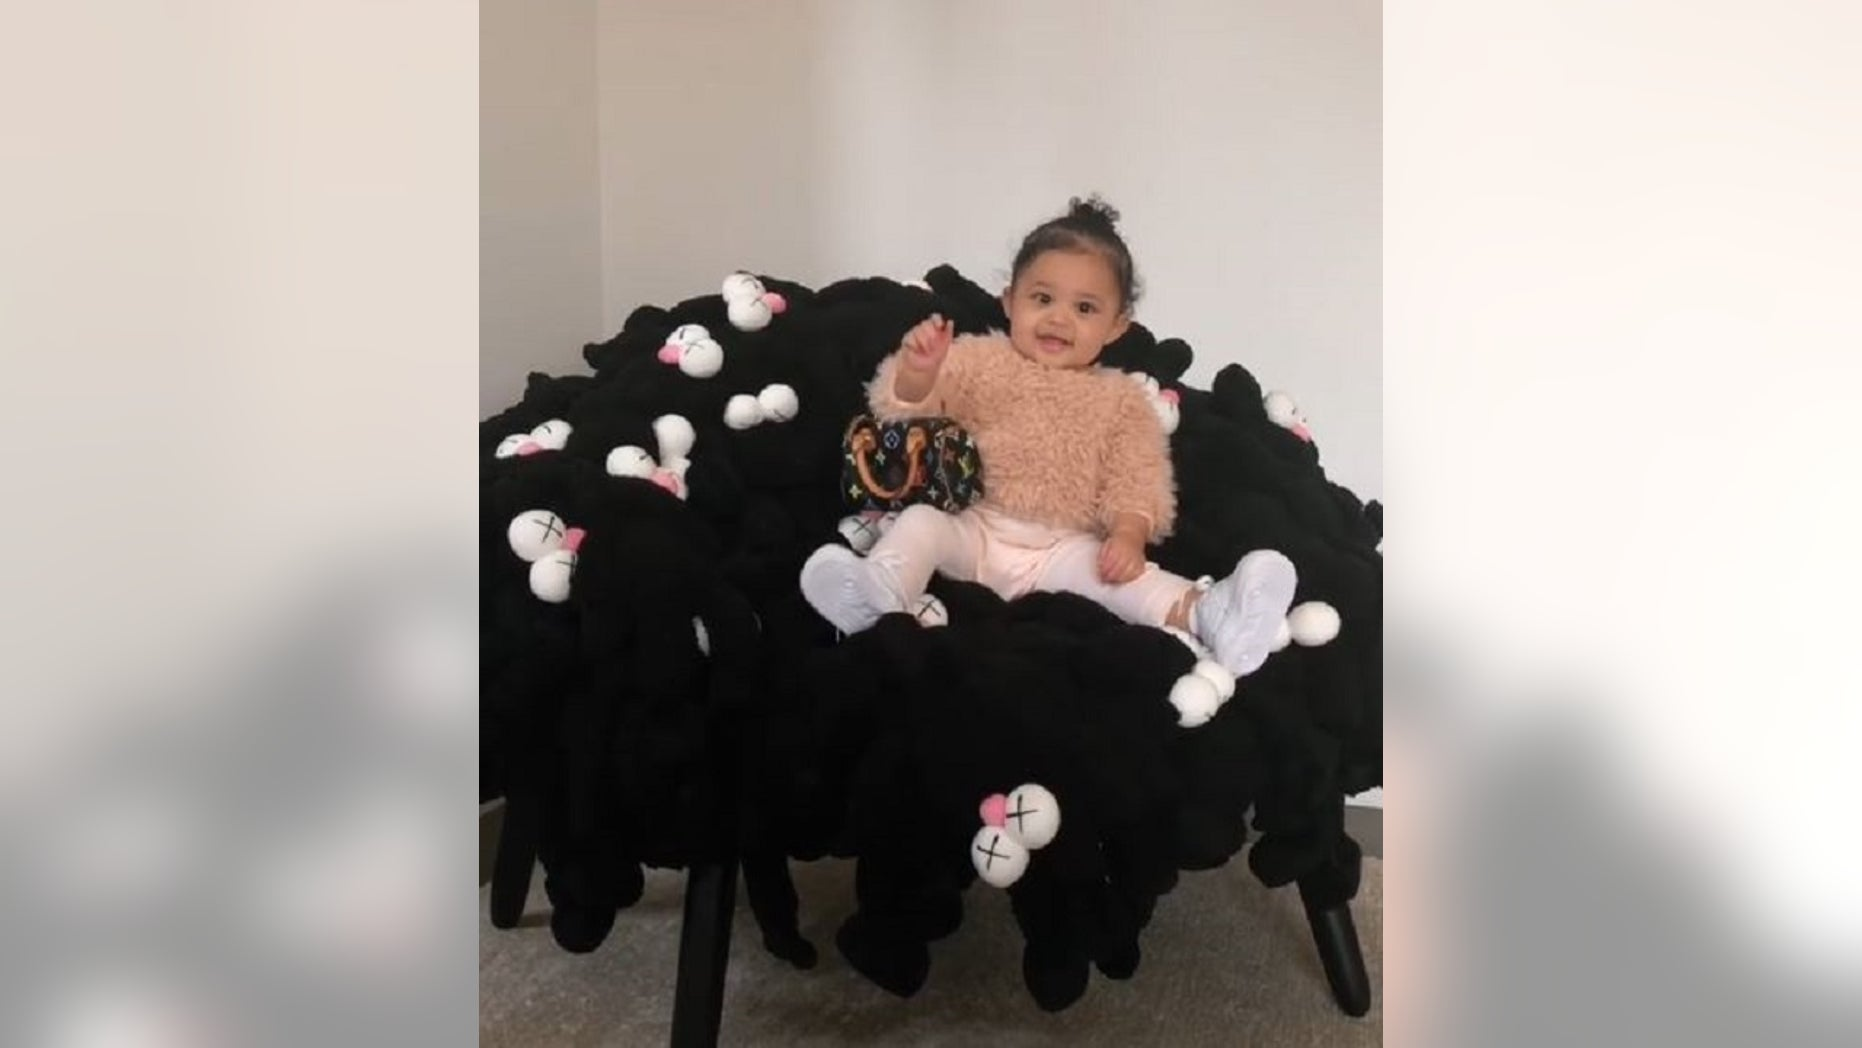 Stormi, daughter of Kylie Jenner and Travis Scott, was gifted a new chair, an art piece that could be valued at up to $2.5 million, a report said.